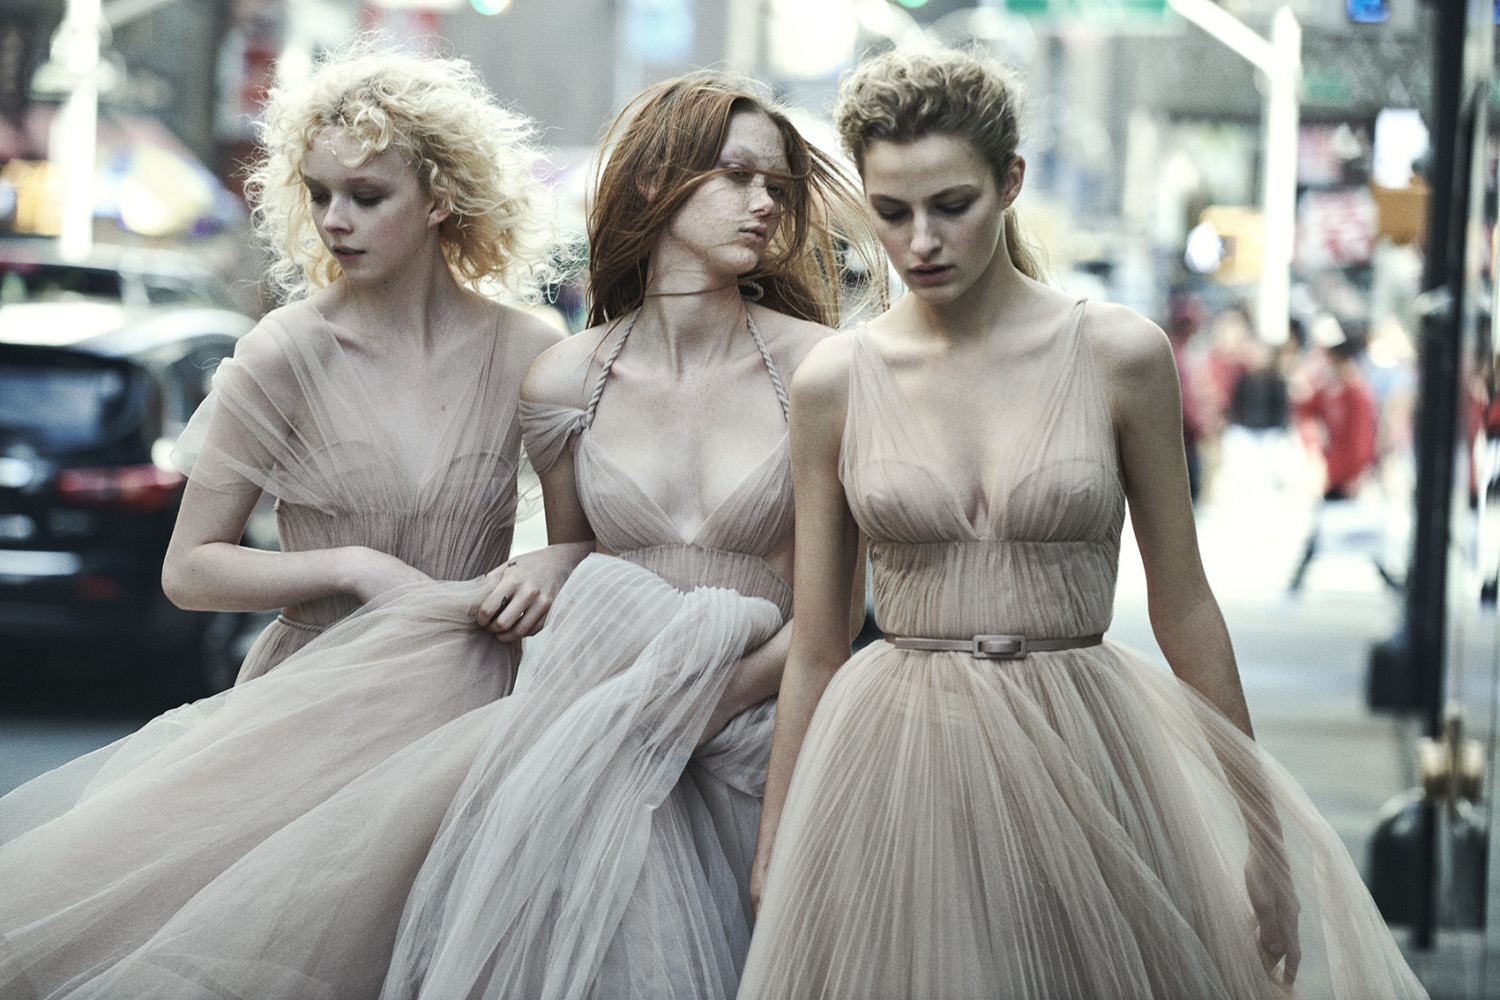 Felice for Dior